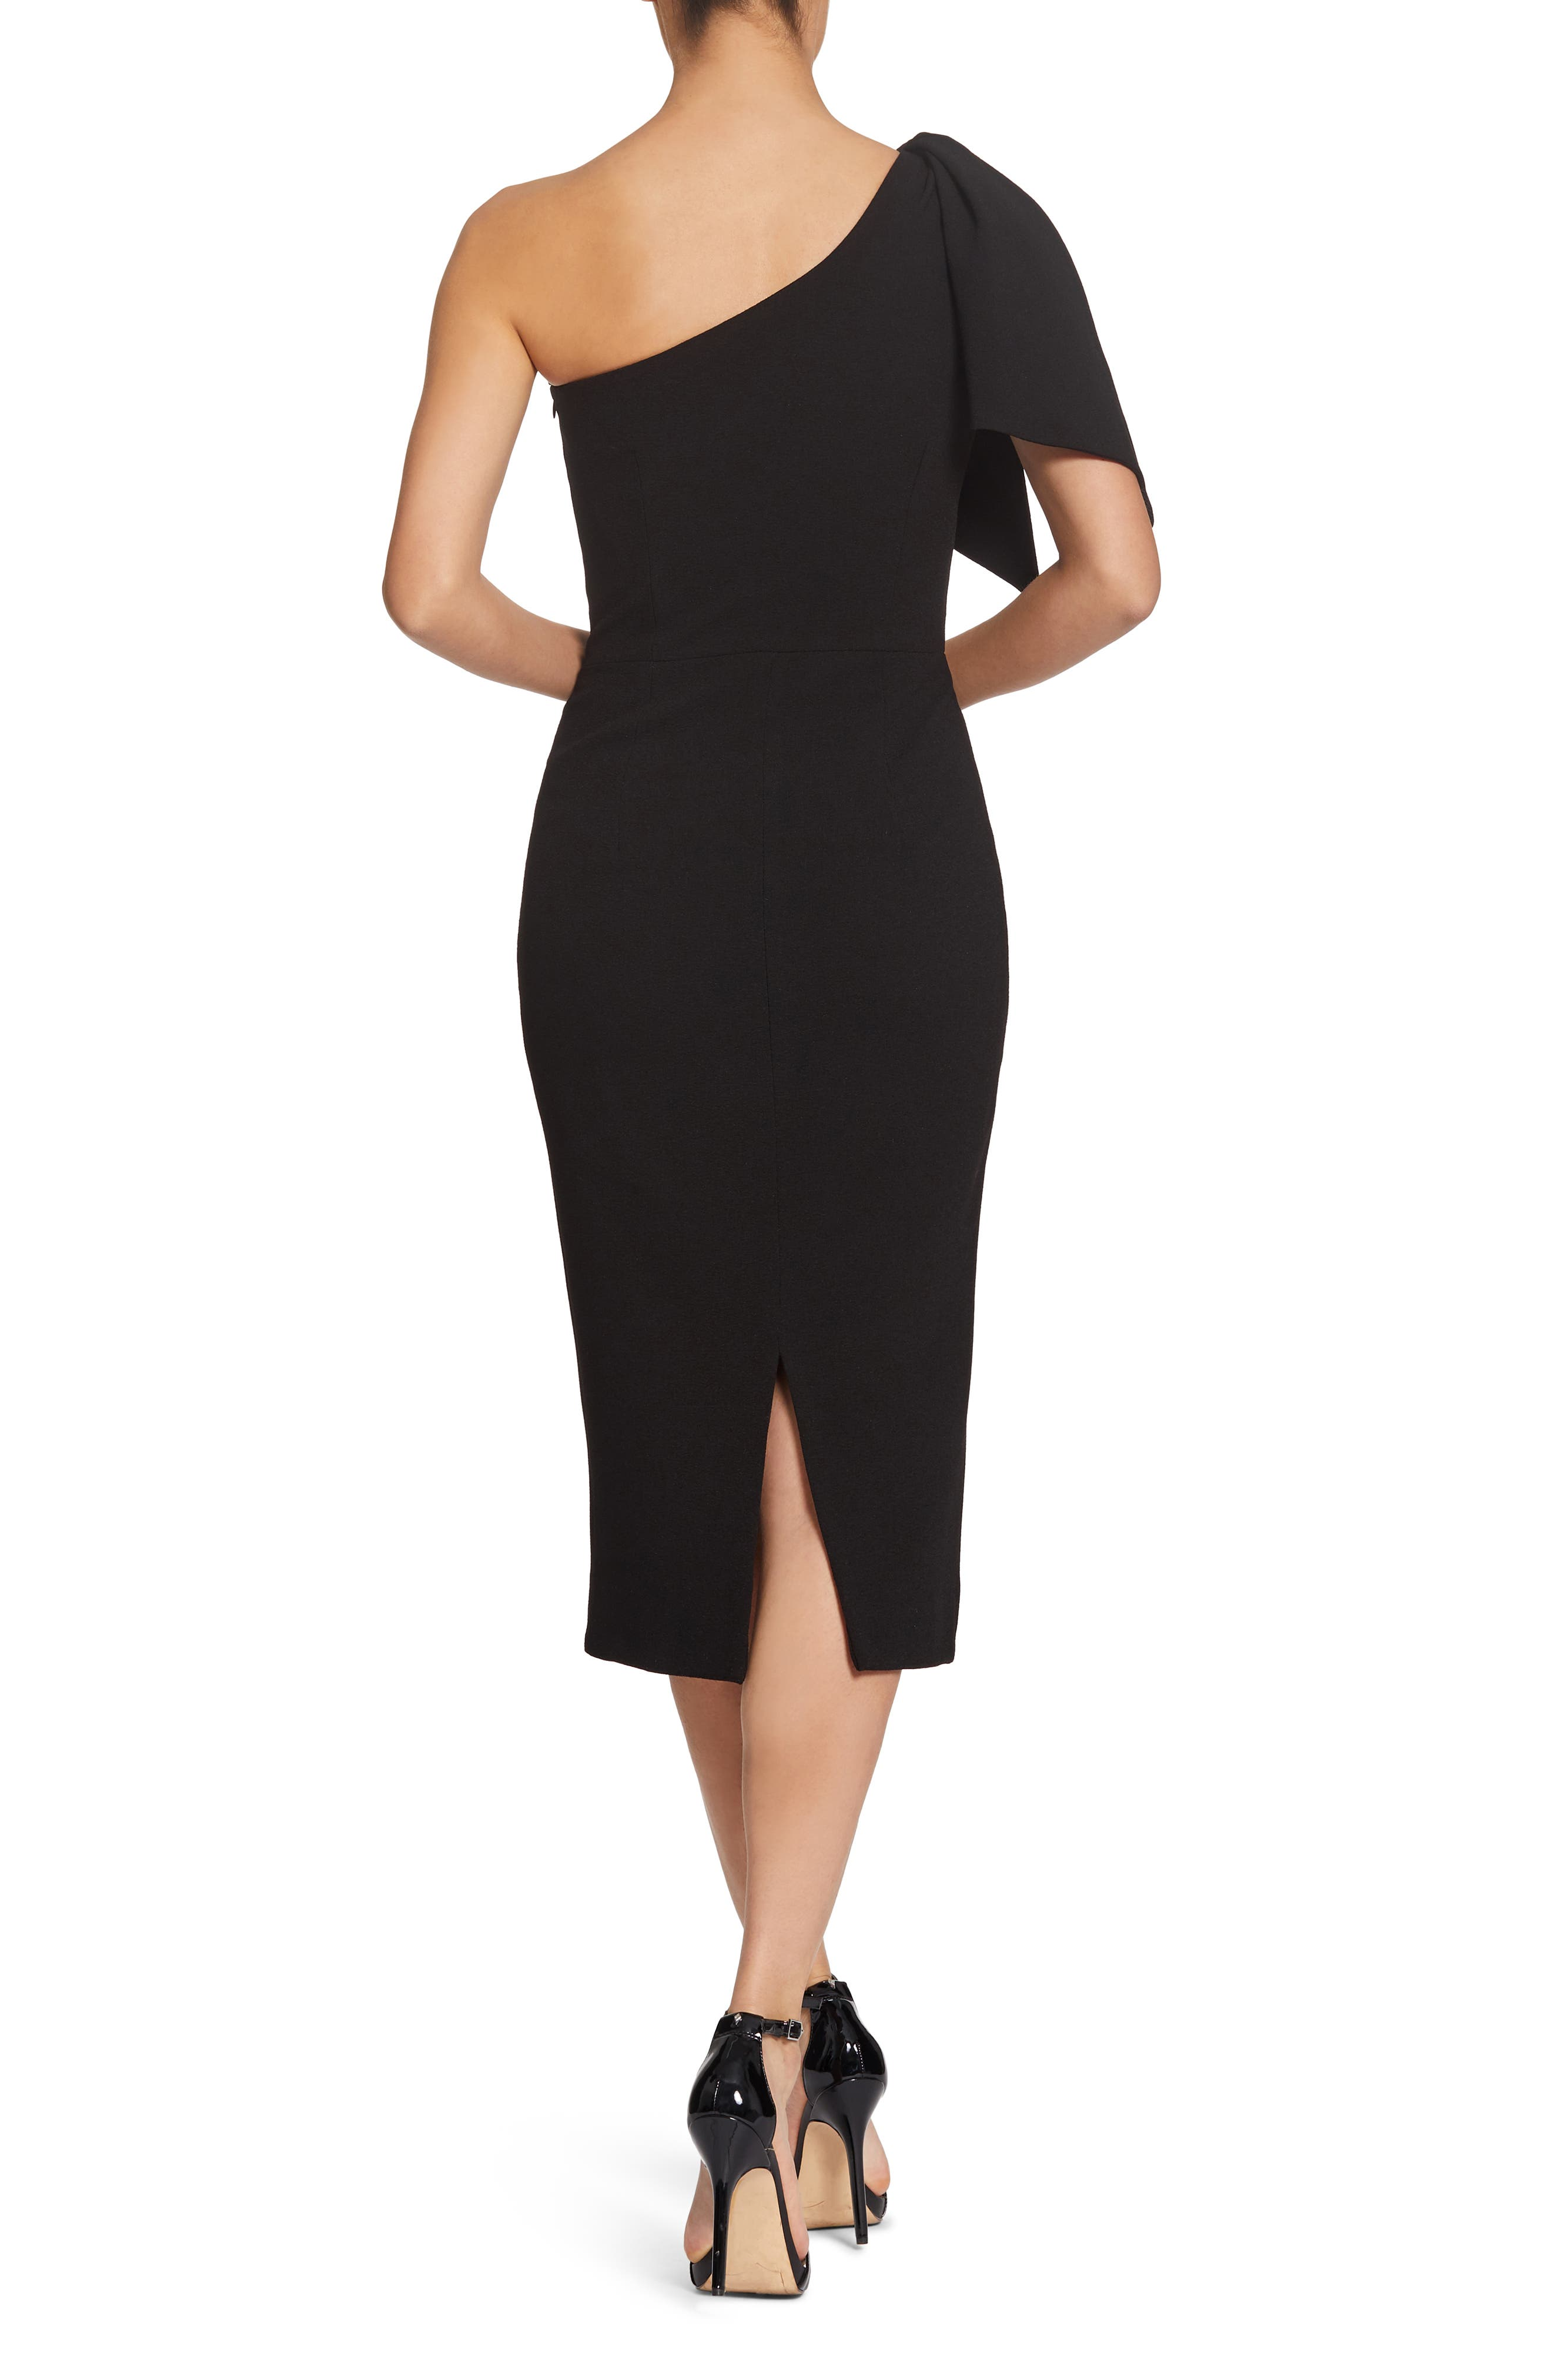 Tiffany One-Shoulder Midi Dress,                             Alternate thumbnail 2, color,                             BLACK